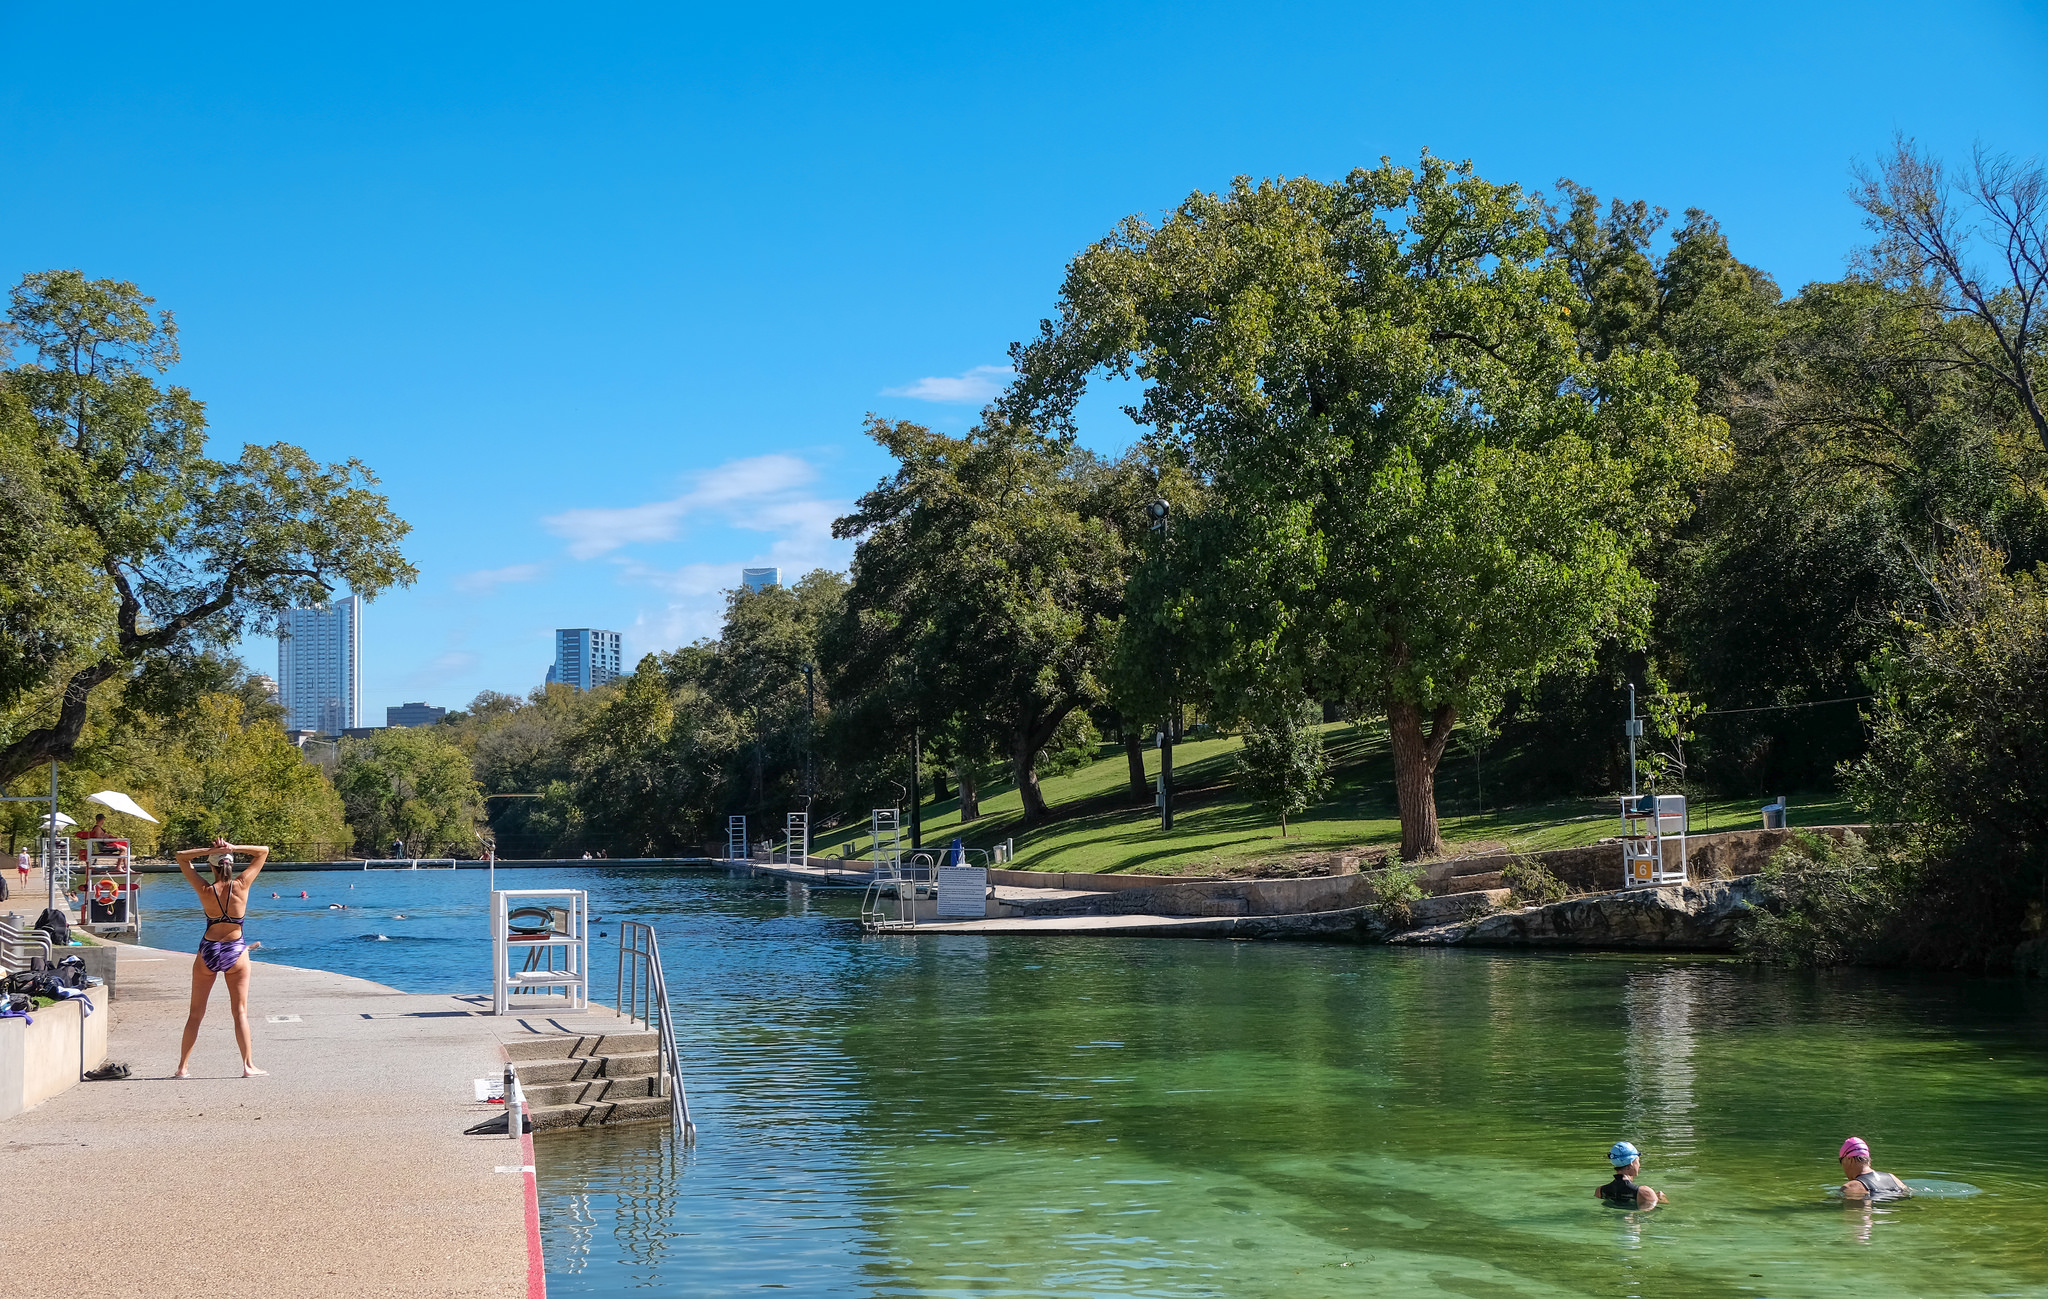 Barton Springs this fine Autumn morning by Lars Plougmann under CC BY-SA 2.0